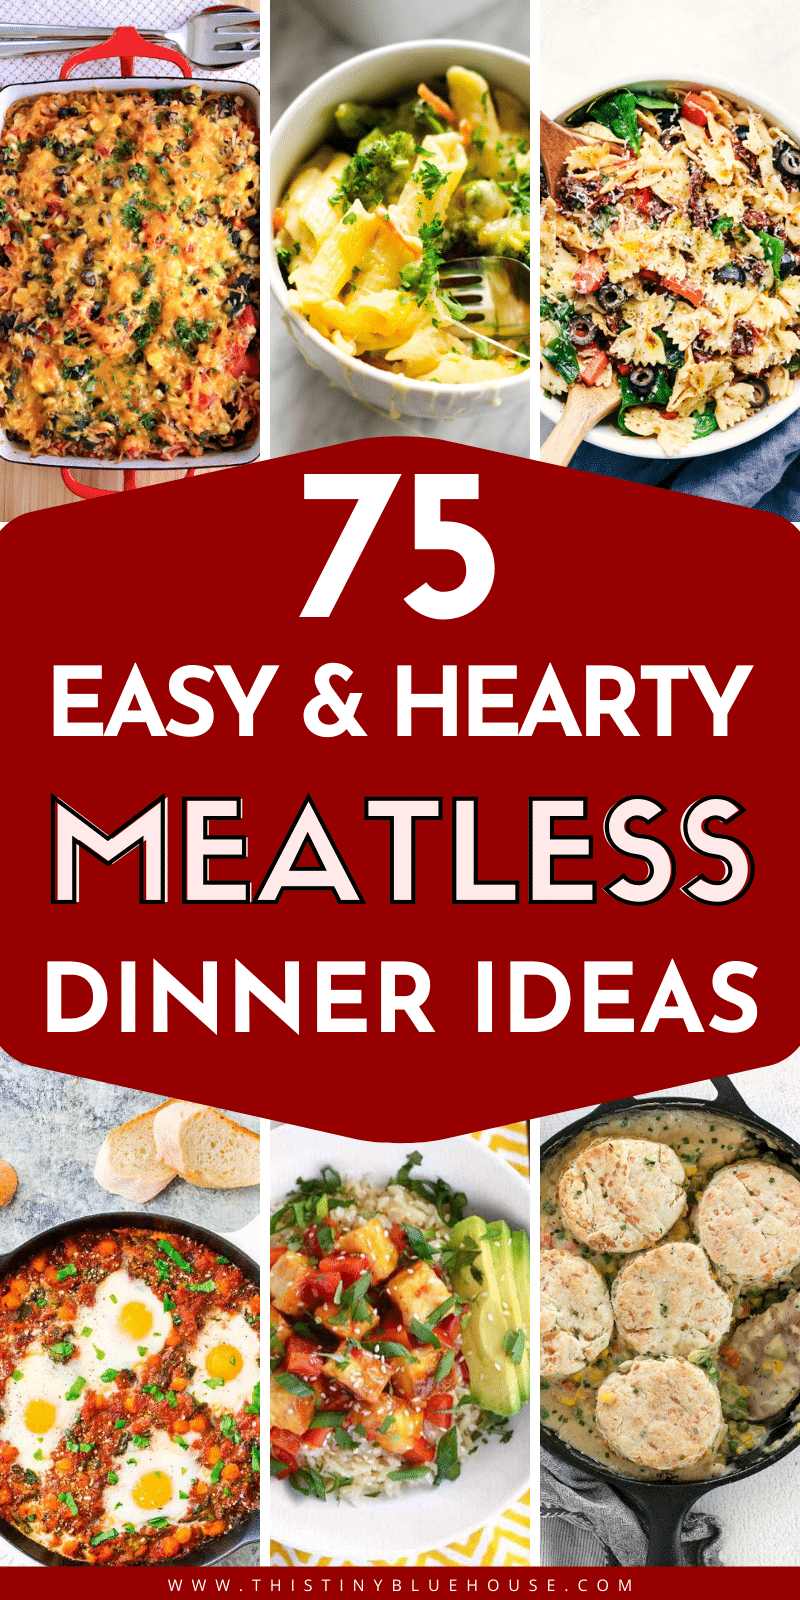 Here are 75 delicious and hearty meatless meals that even the carnivore in the family will love. These recipe ideas are easy, budget friendly and above all delicious meatless meals   meatless meals for meat eater   budget friendly recipes   easy dinner ideas   quick dinner ideas   busy weeknight dinner ideas   vegetarian meals   vegetarian meal ideas   vegetarian dinner ideas   vegetarian dinner recipes